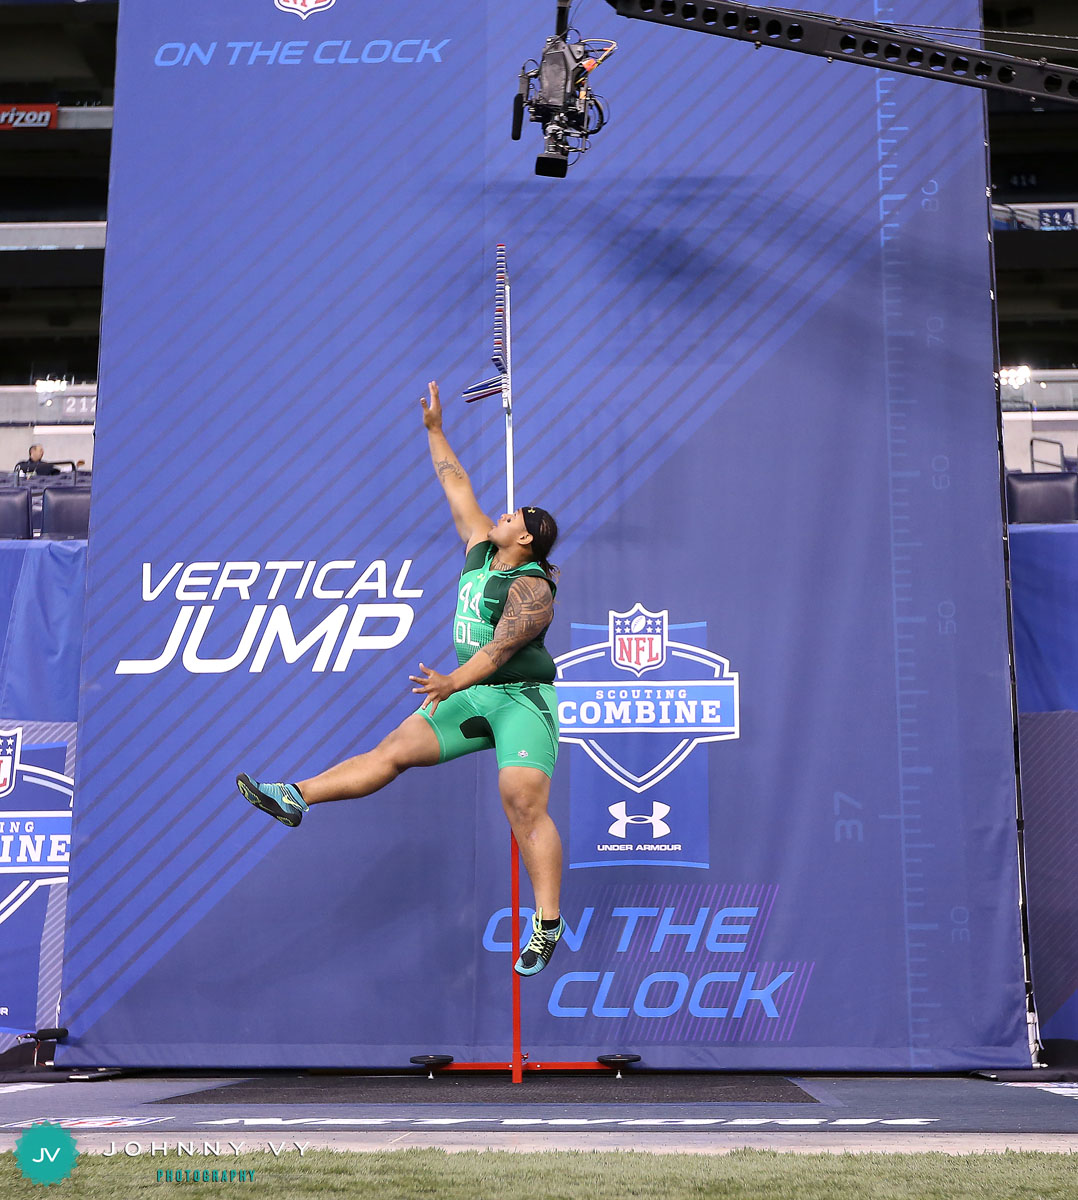 Is there a website with all the vertical leap numbers of all the players in the NFL?